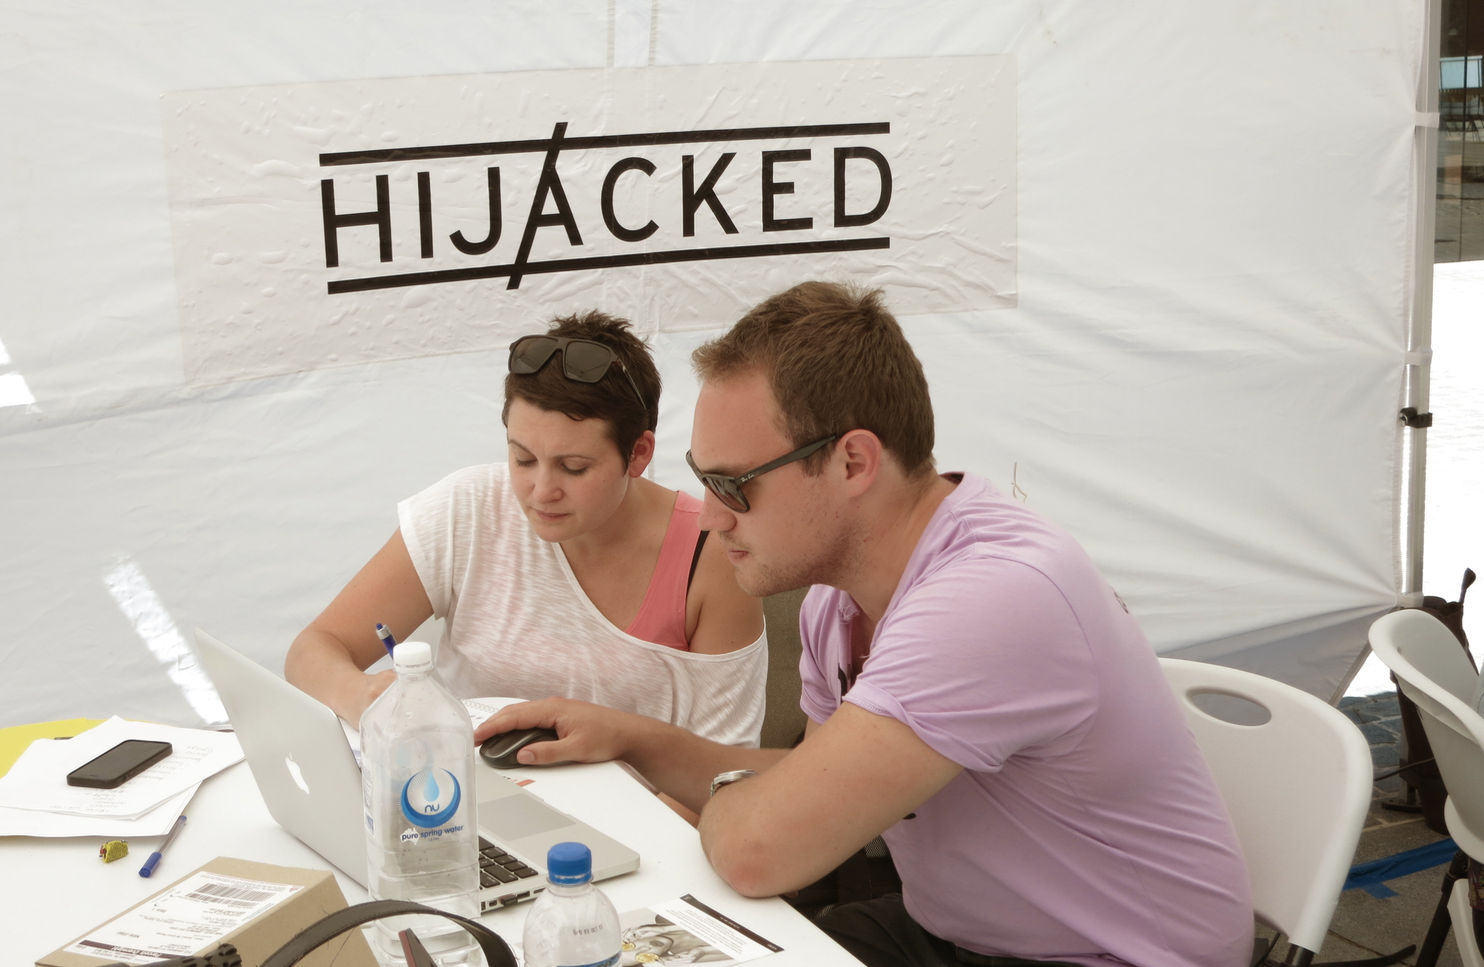 On campus research with real students was essential when preparing to launch Hijacked